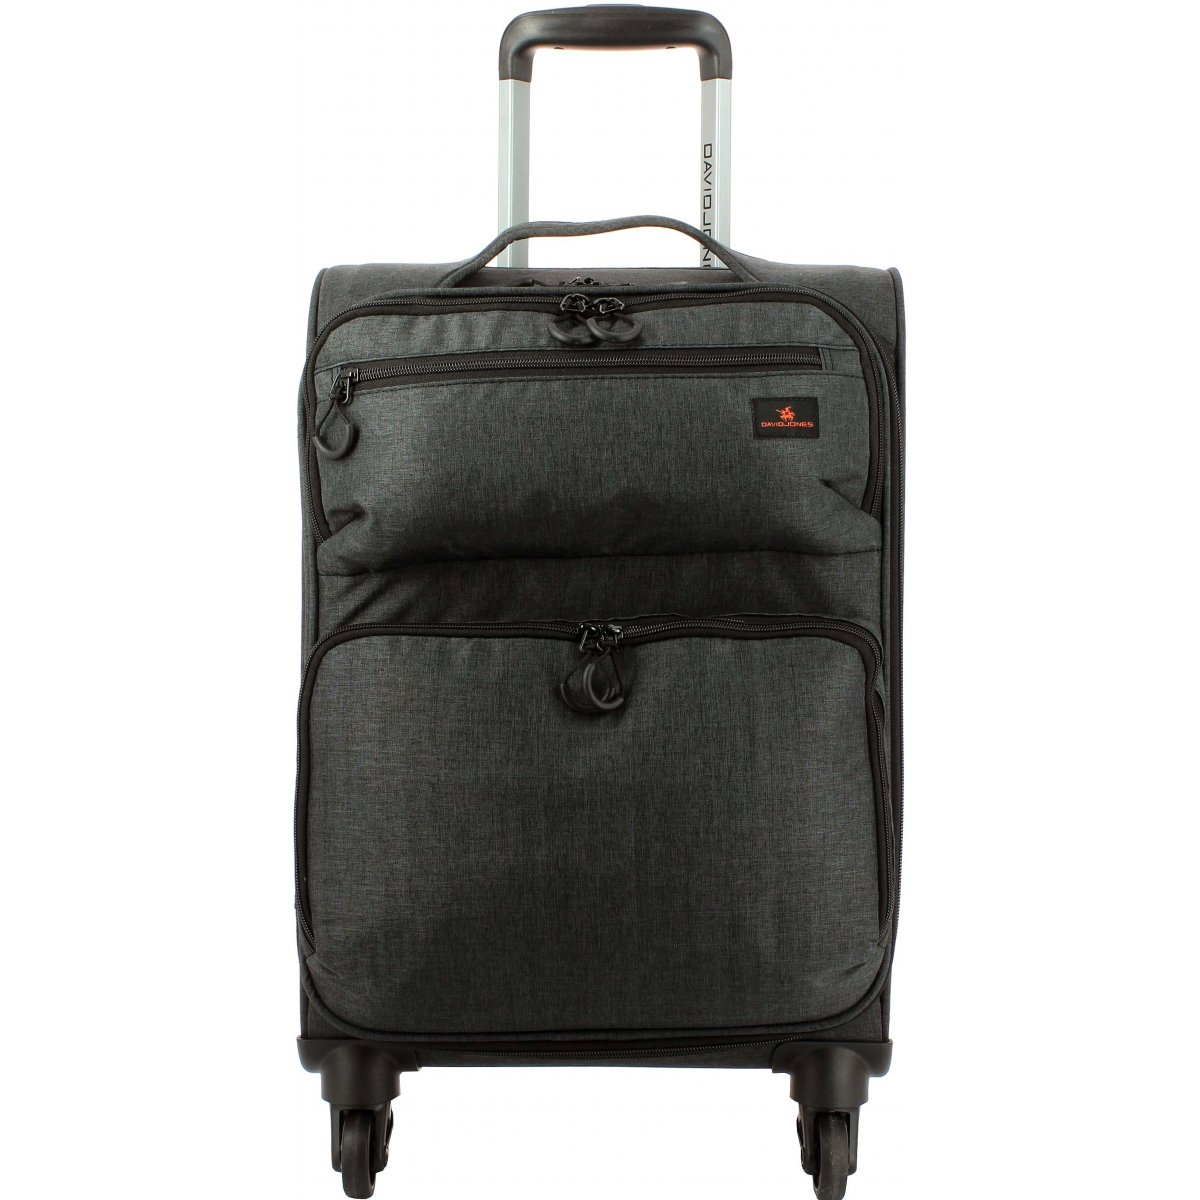 valise cabine souple david jones 55cm ba50311p couleur principale noir valise pas cher. Black Bedroom Furniture Sets. Home Design Ideas